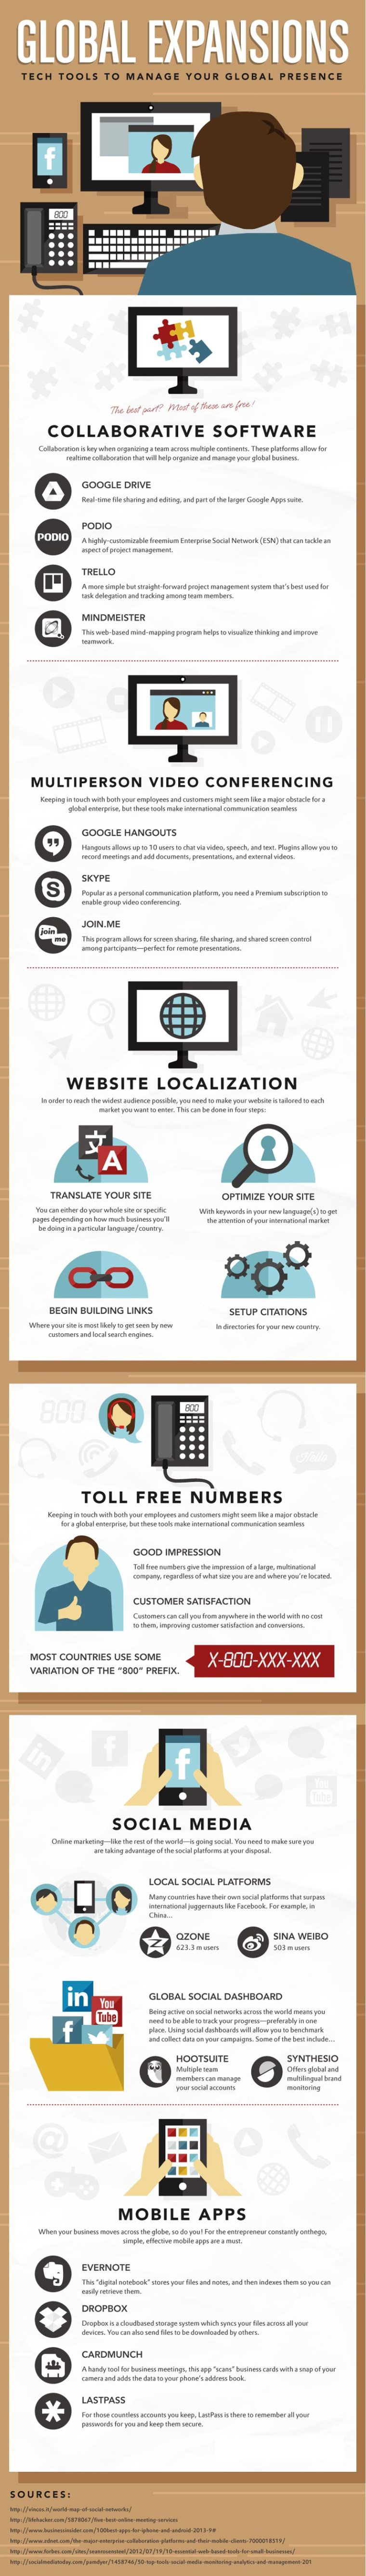 Tech tools for global expansions infographic